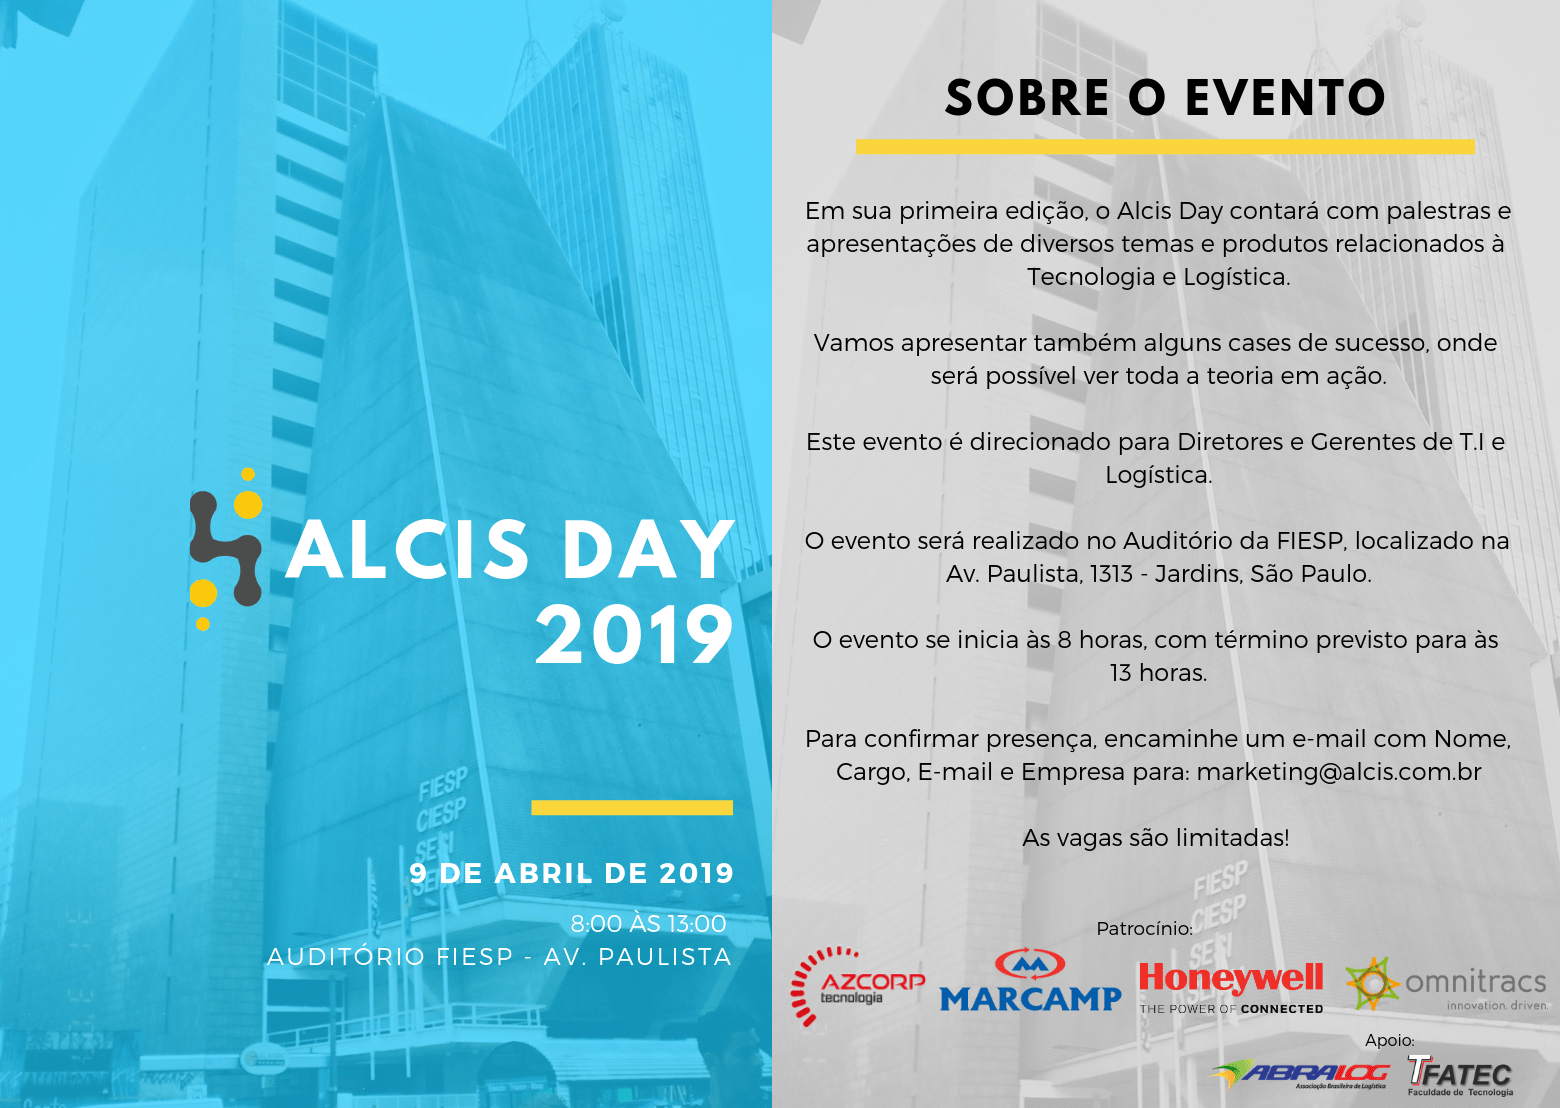 ALCIS DAY 2019 – Dia 9 de abril de 2019